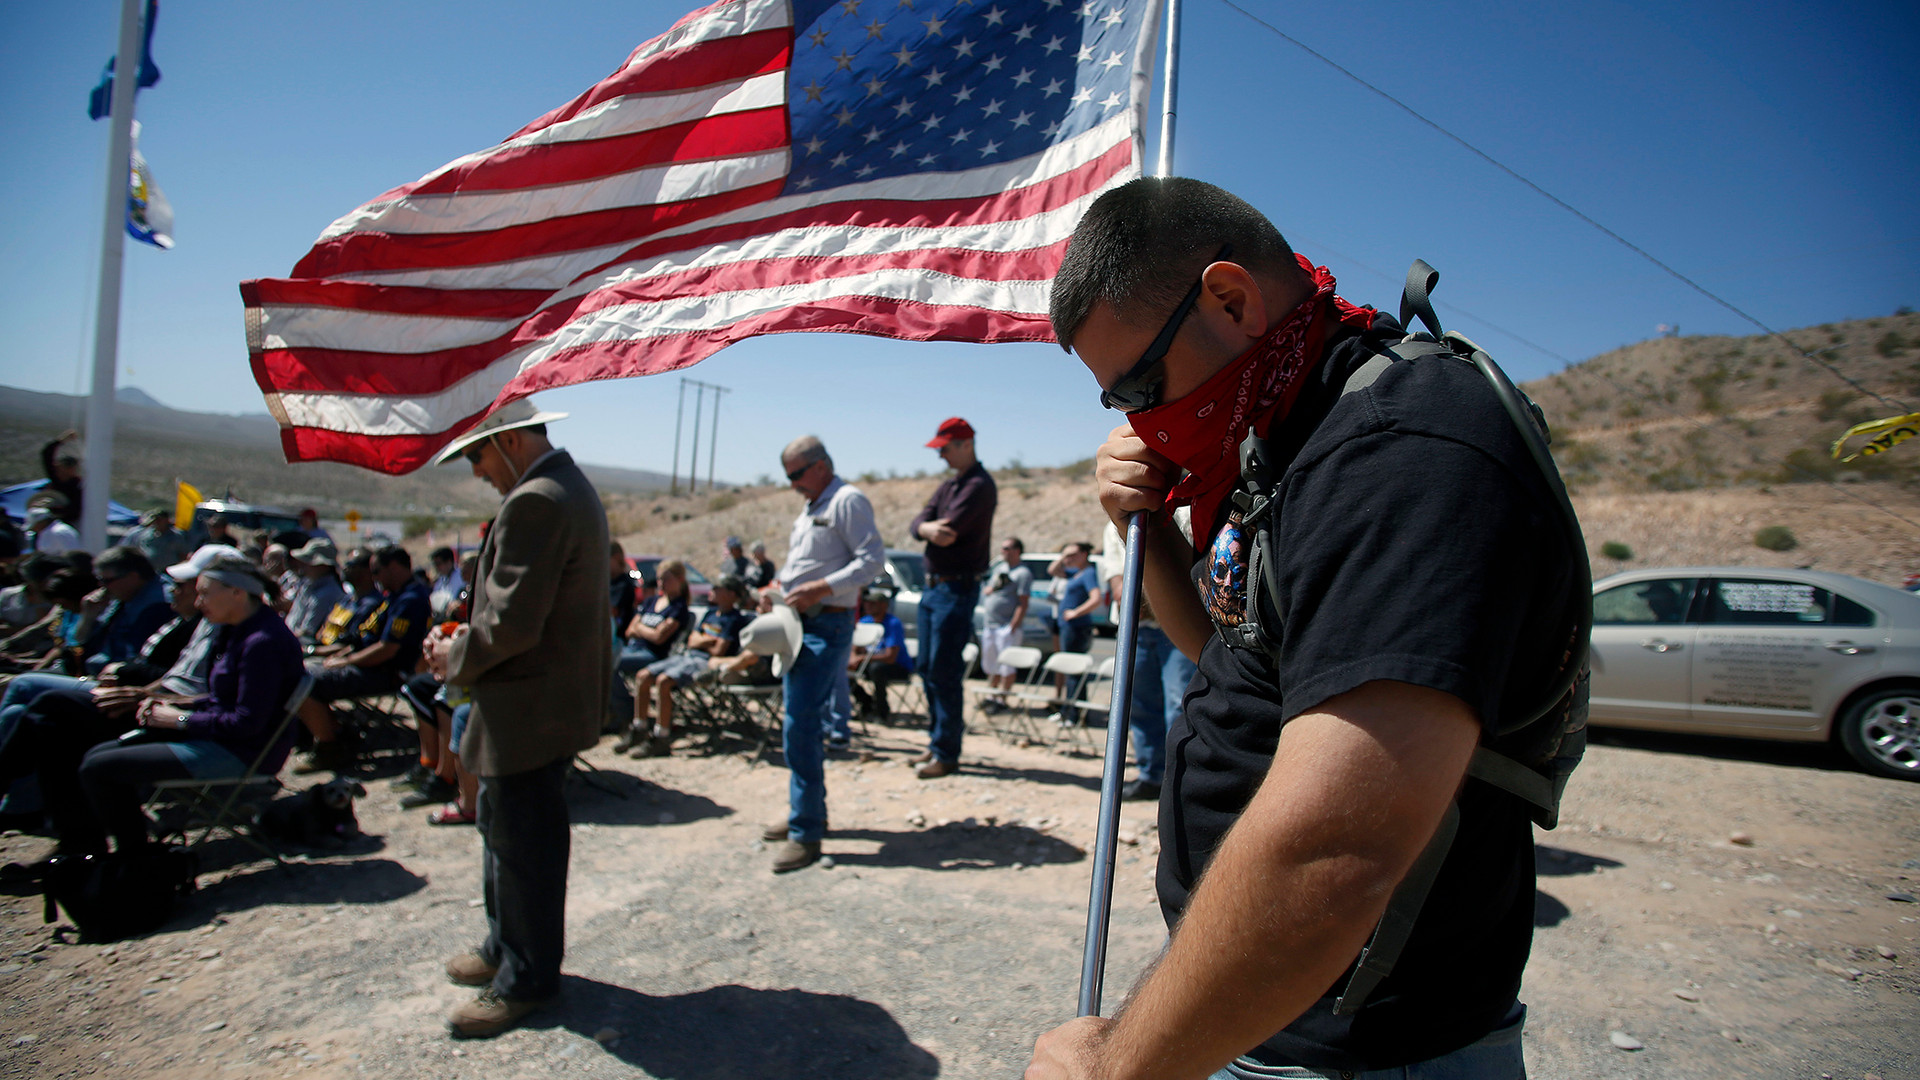 Bundy supporters pray for peace and safety